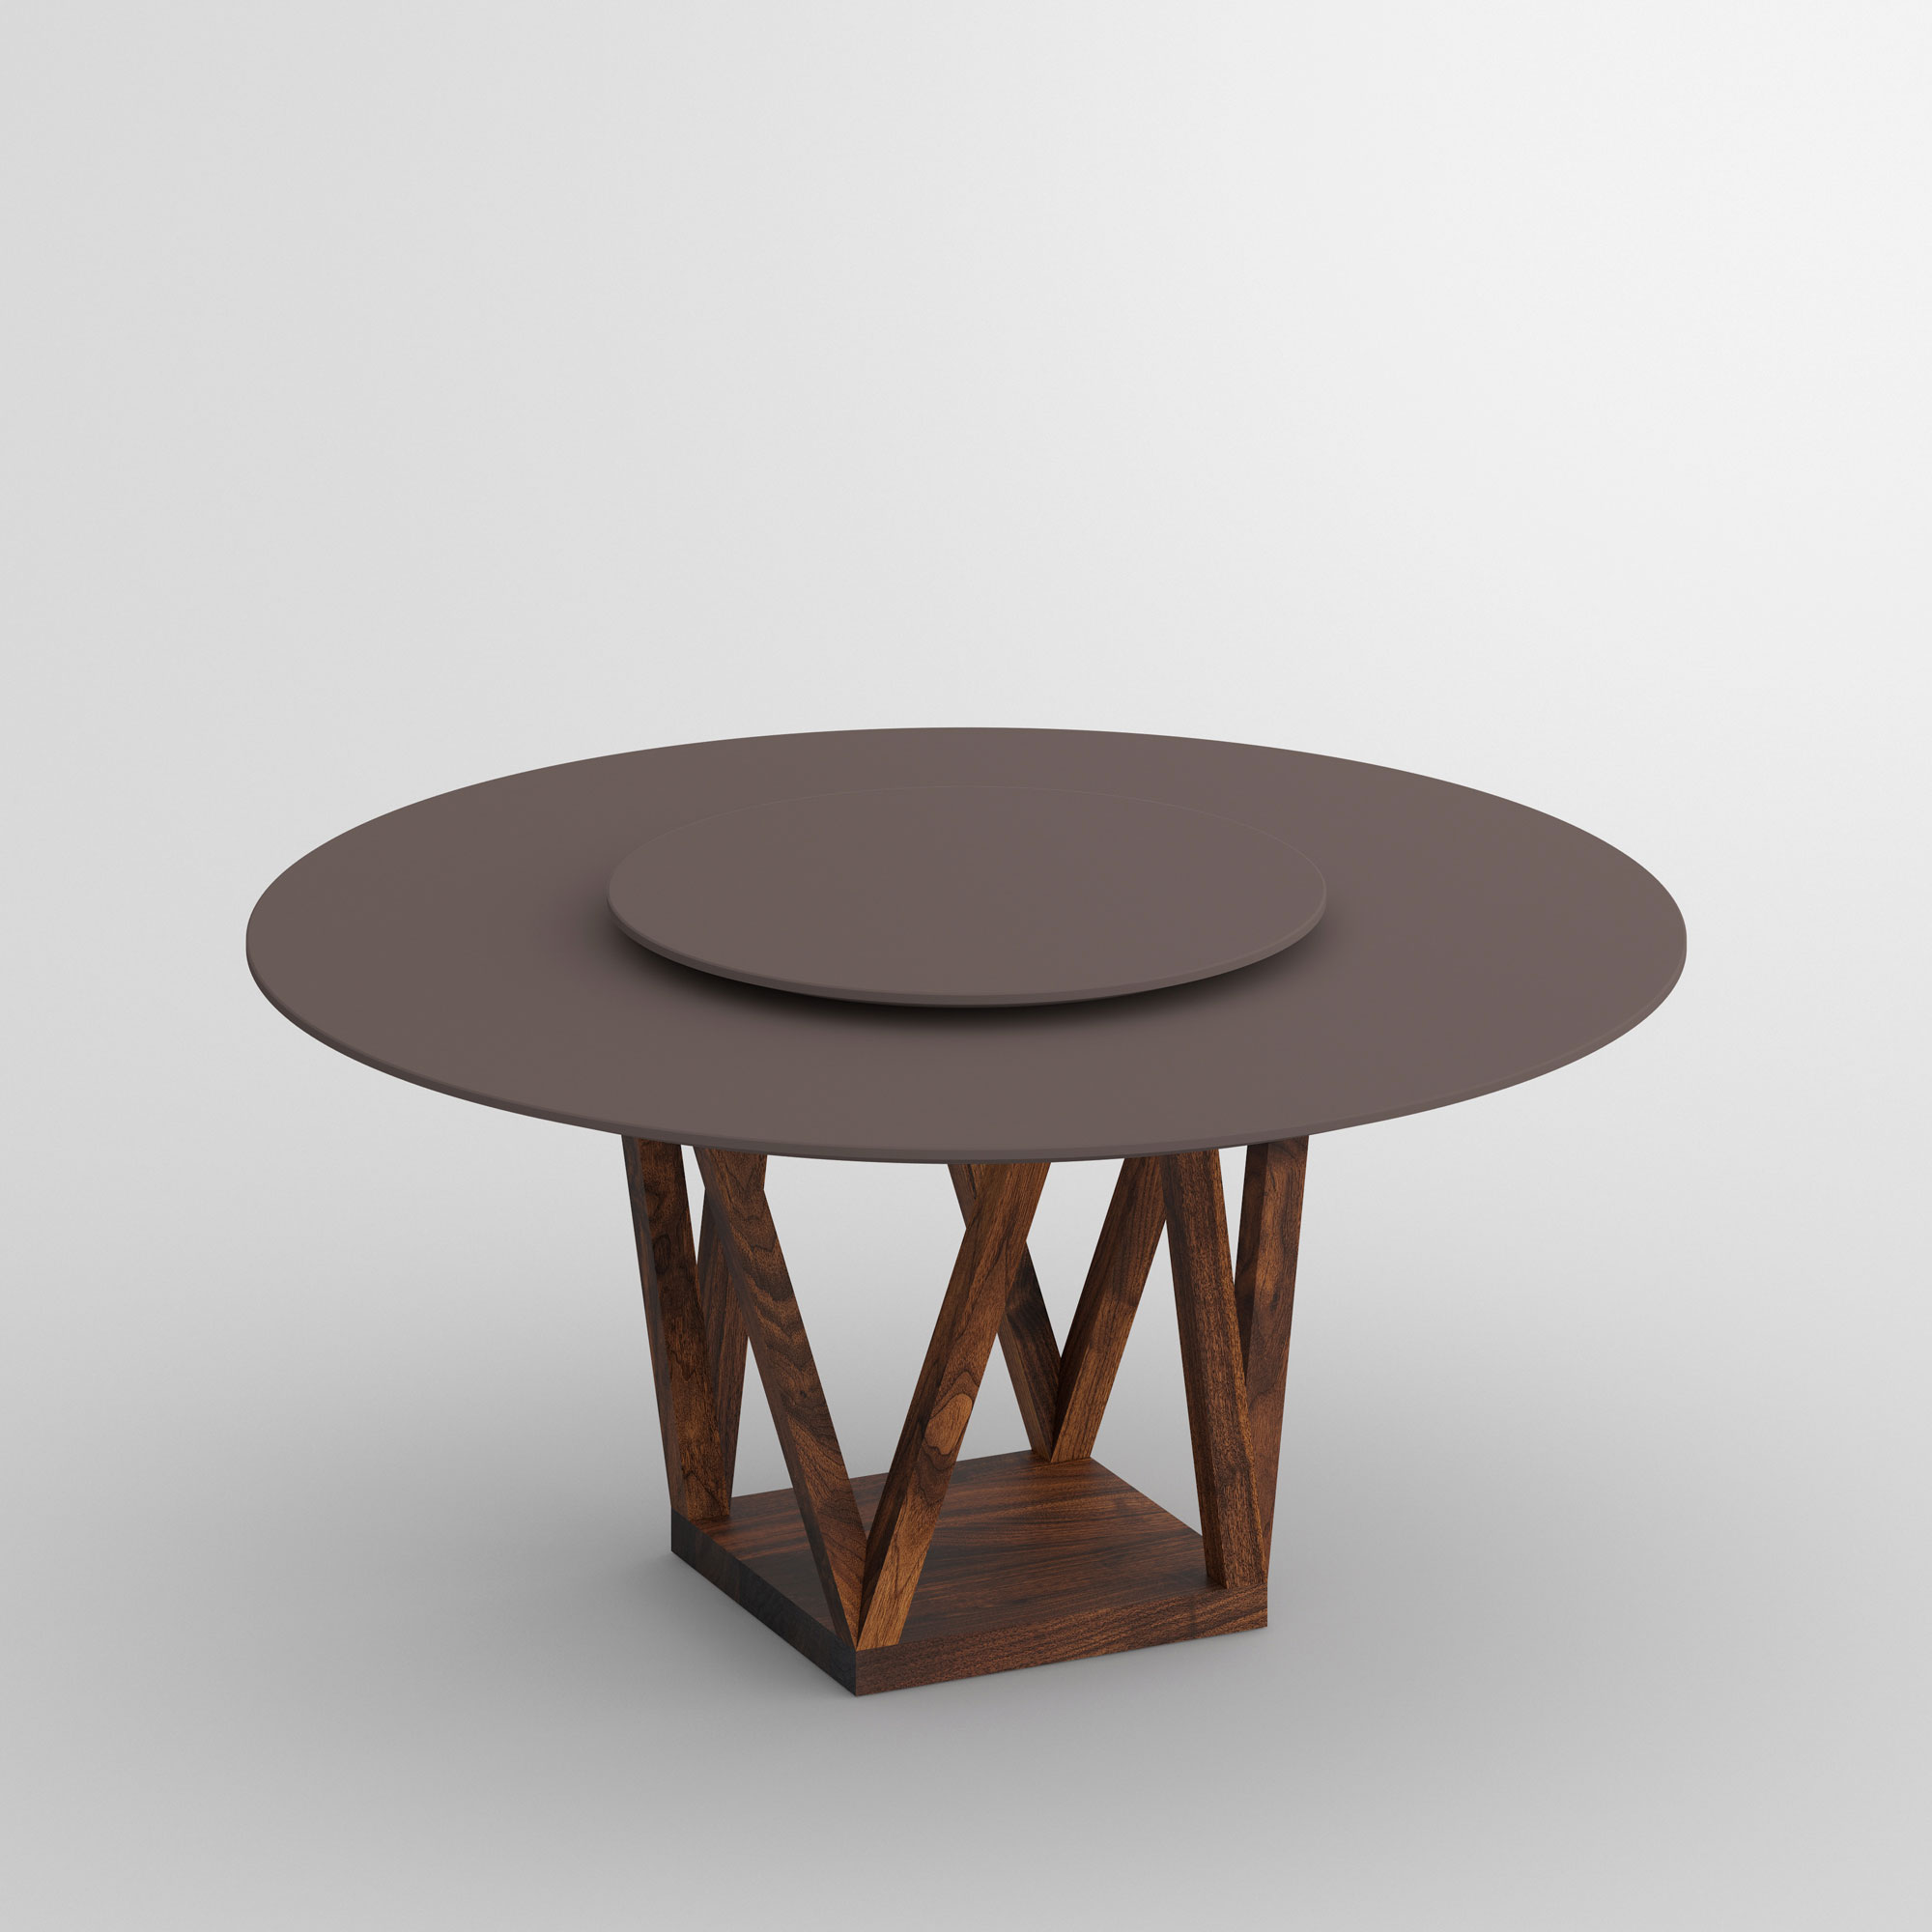 Linoleum Design Table CREO LINO cam1 custom made in solid wood by vitamin design